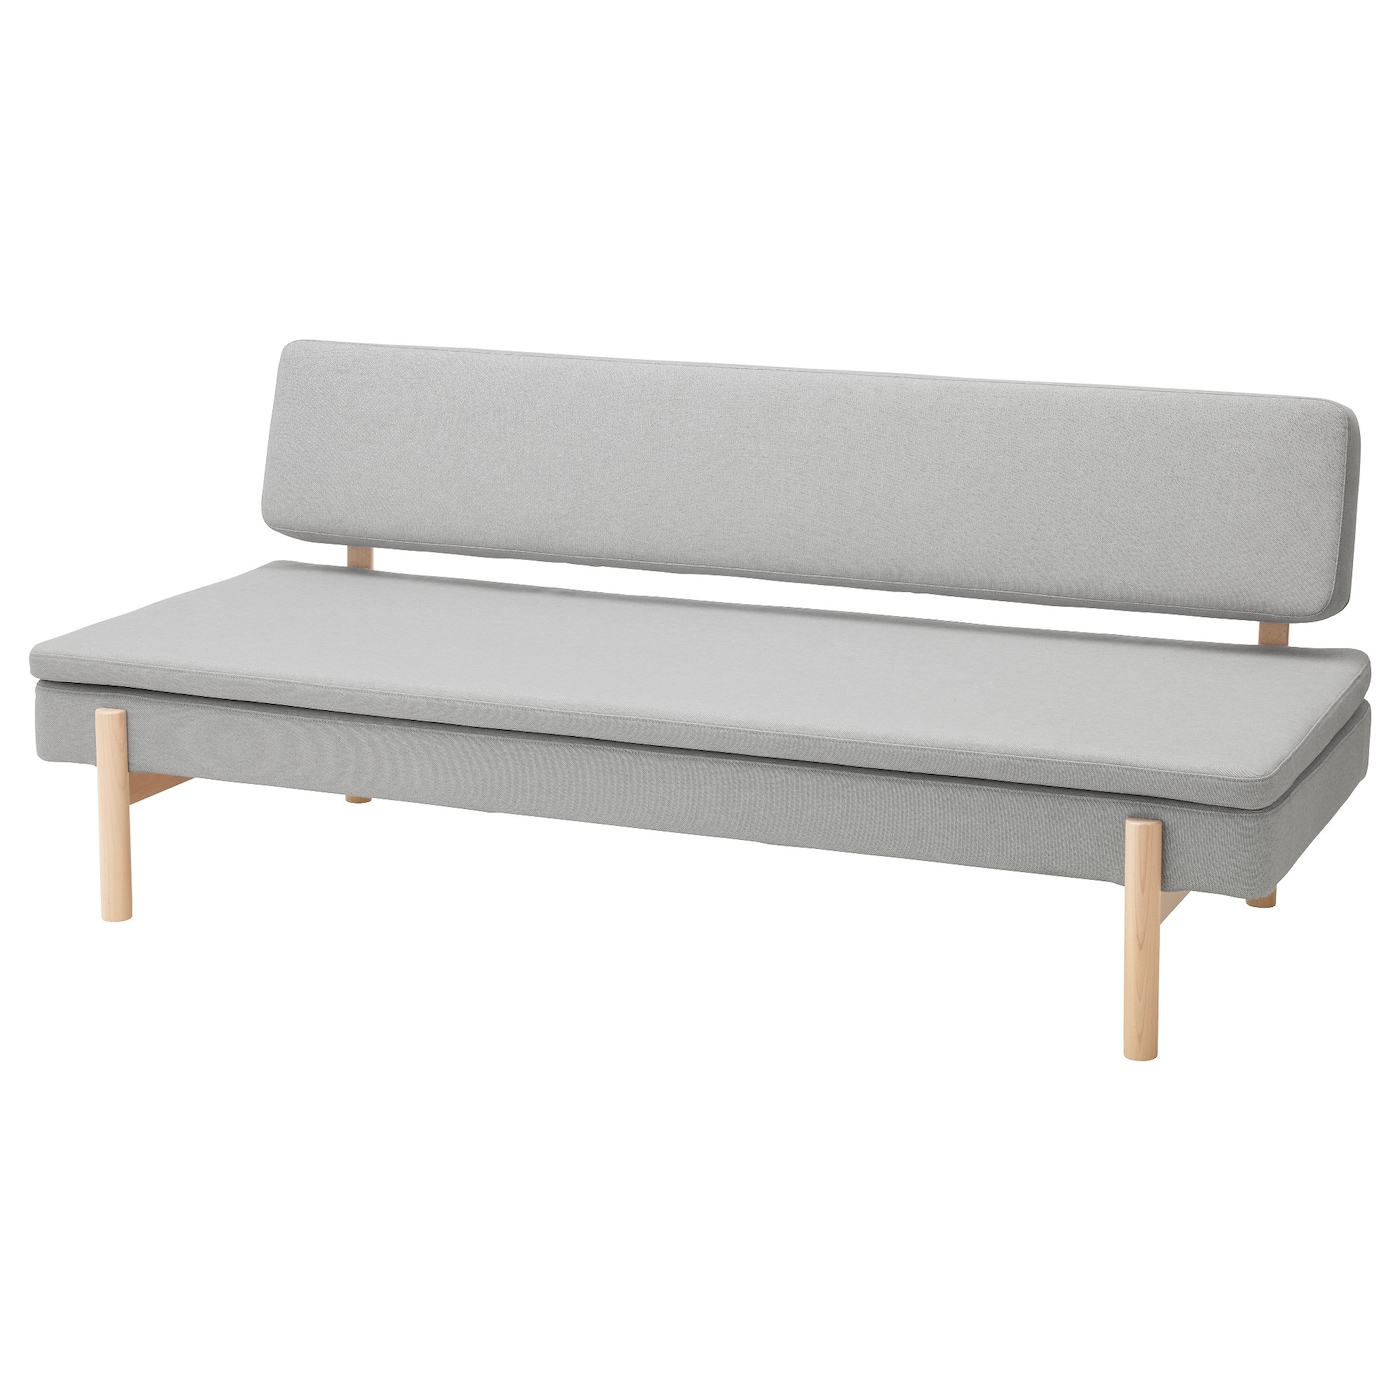 Schlafsofa ikea  YPPERLIG 3-seat sofa bed Ramna light grey - IKEA